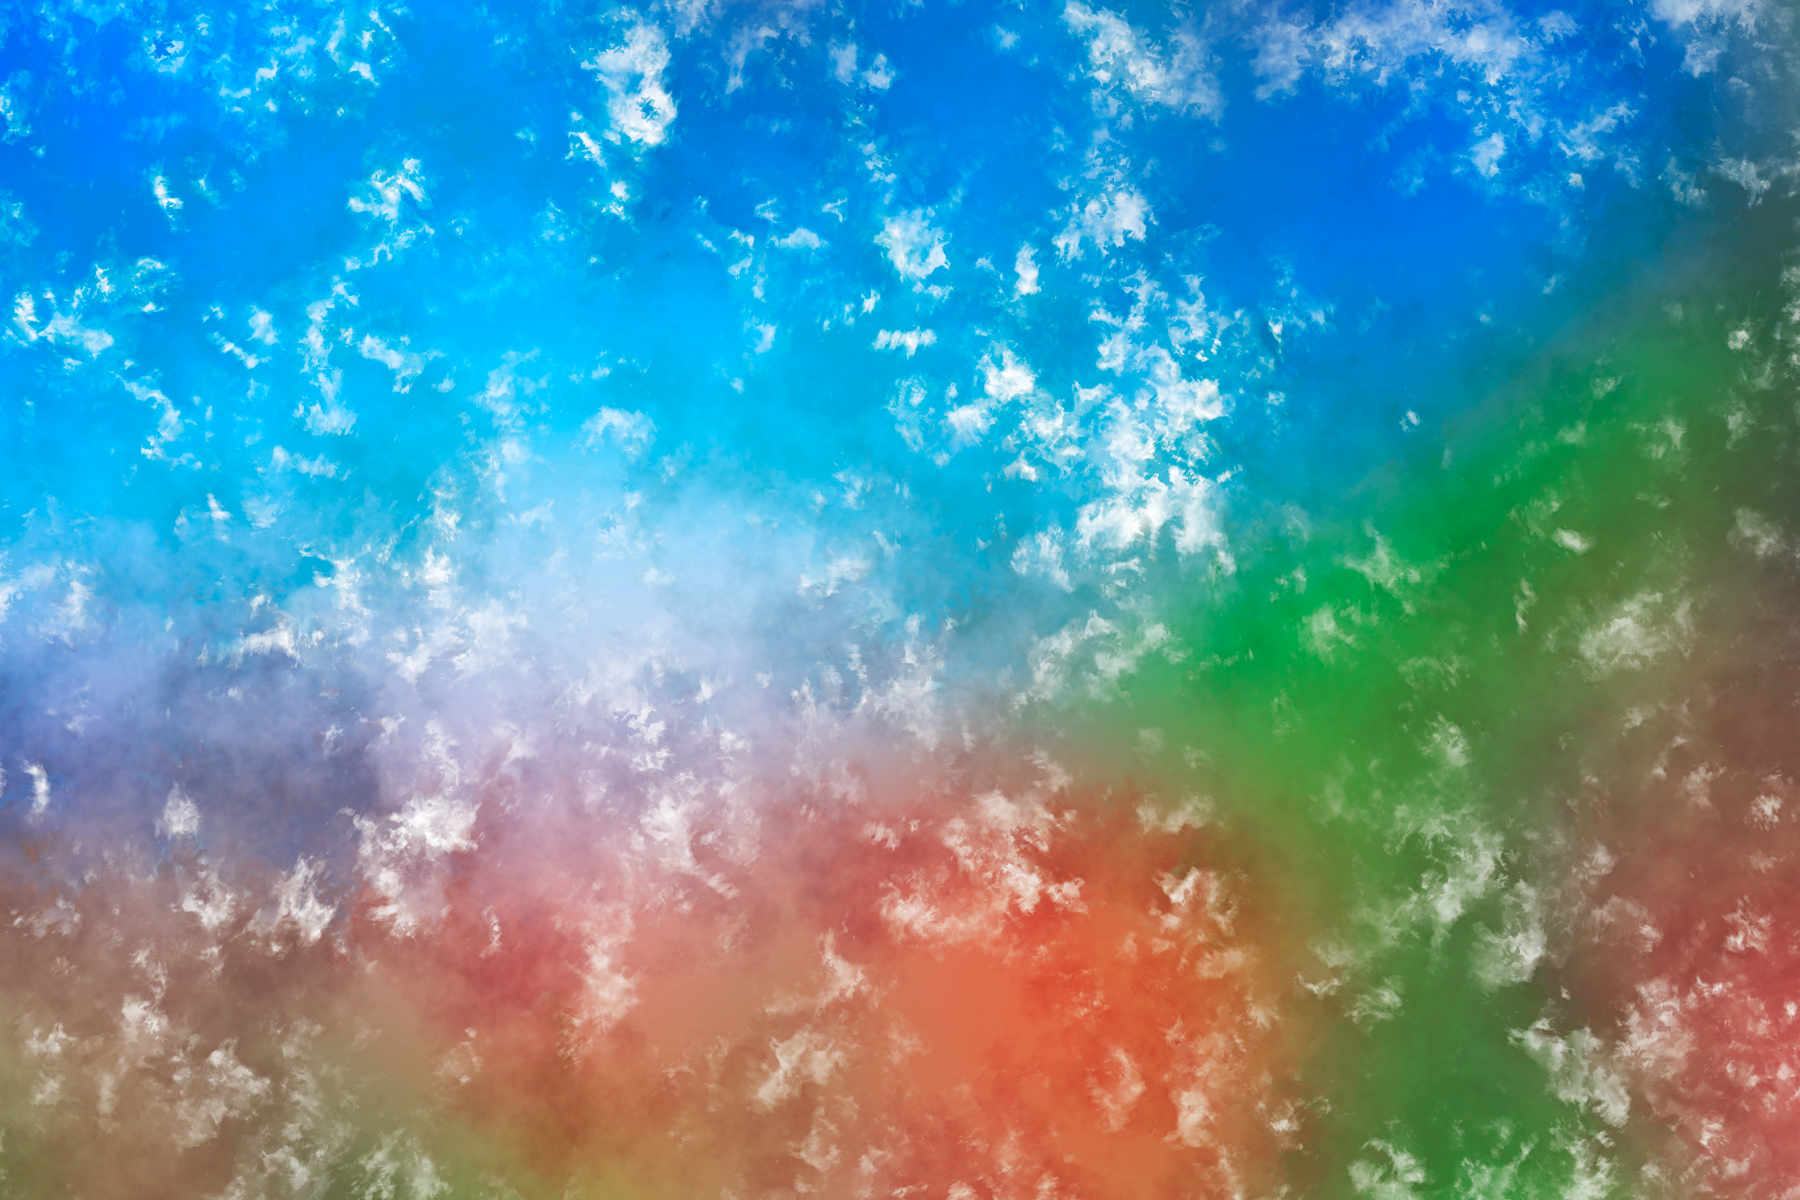 Colorful Pastel Texture, Abstract, Stock, Photo, Photograph, HQ Photo